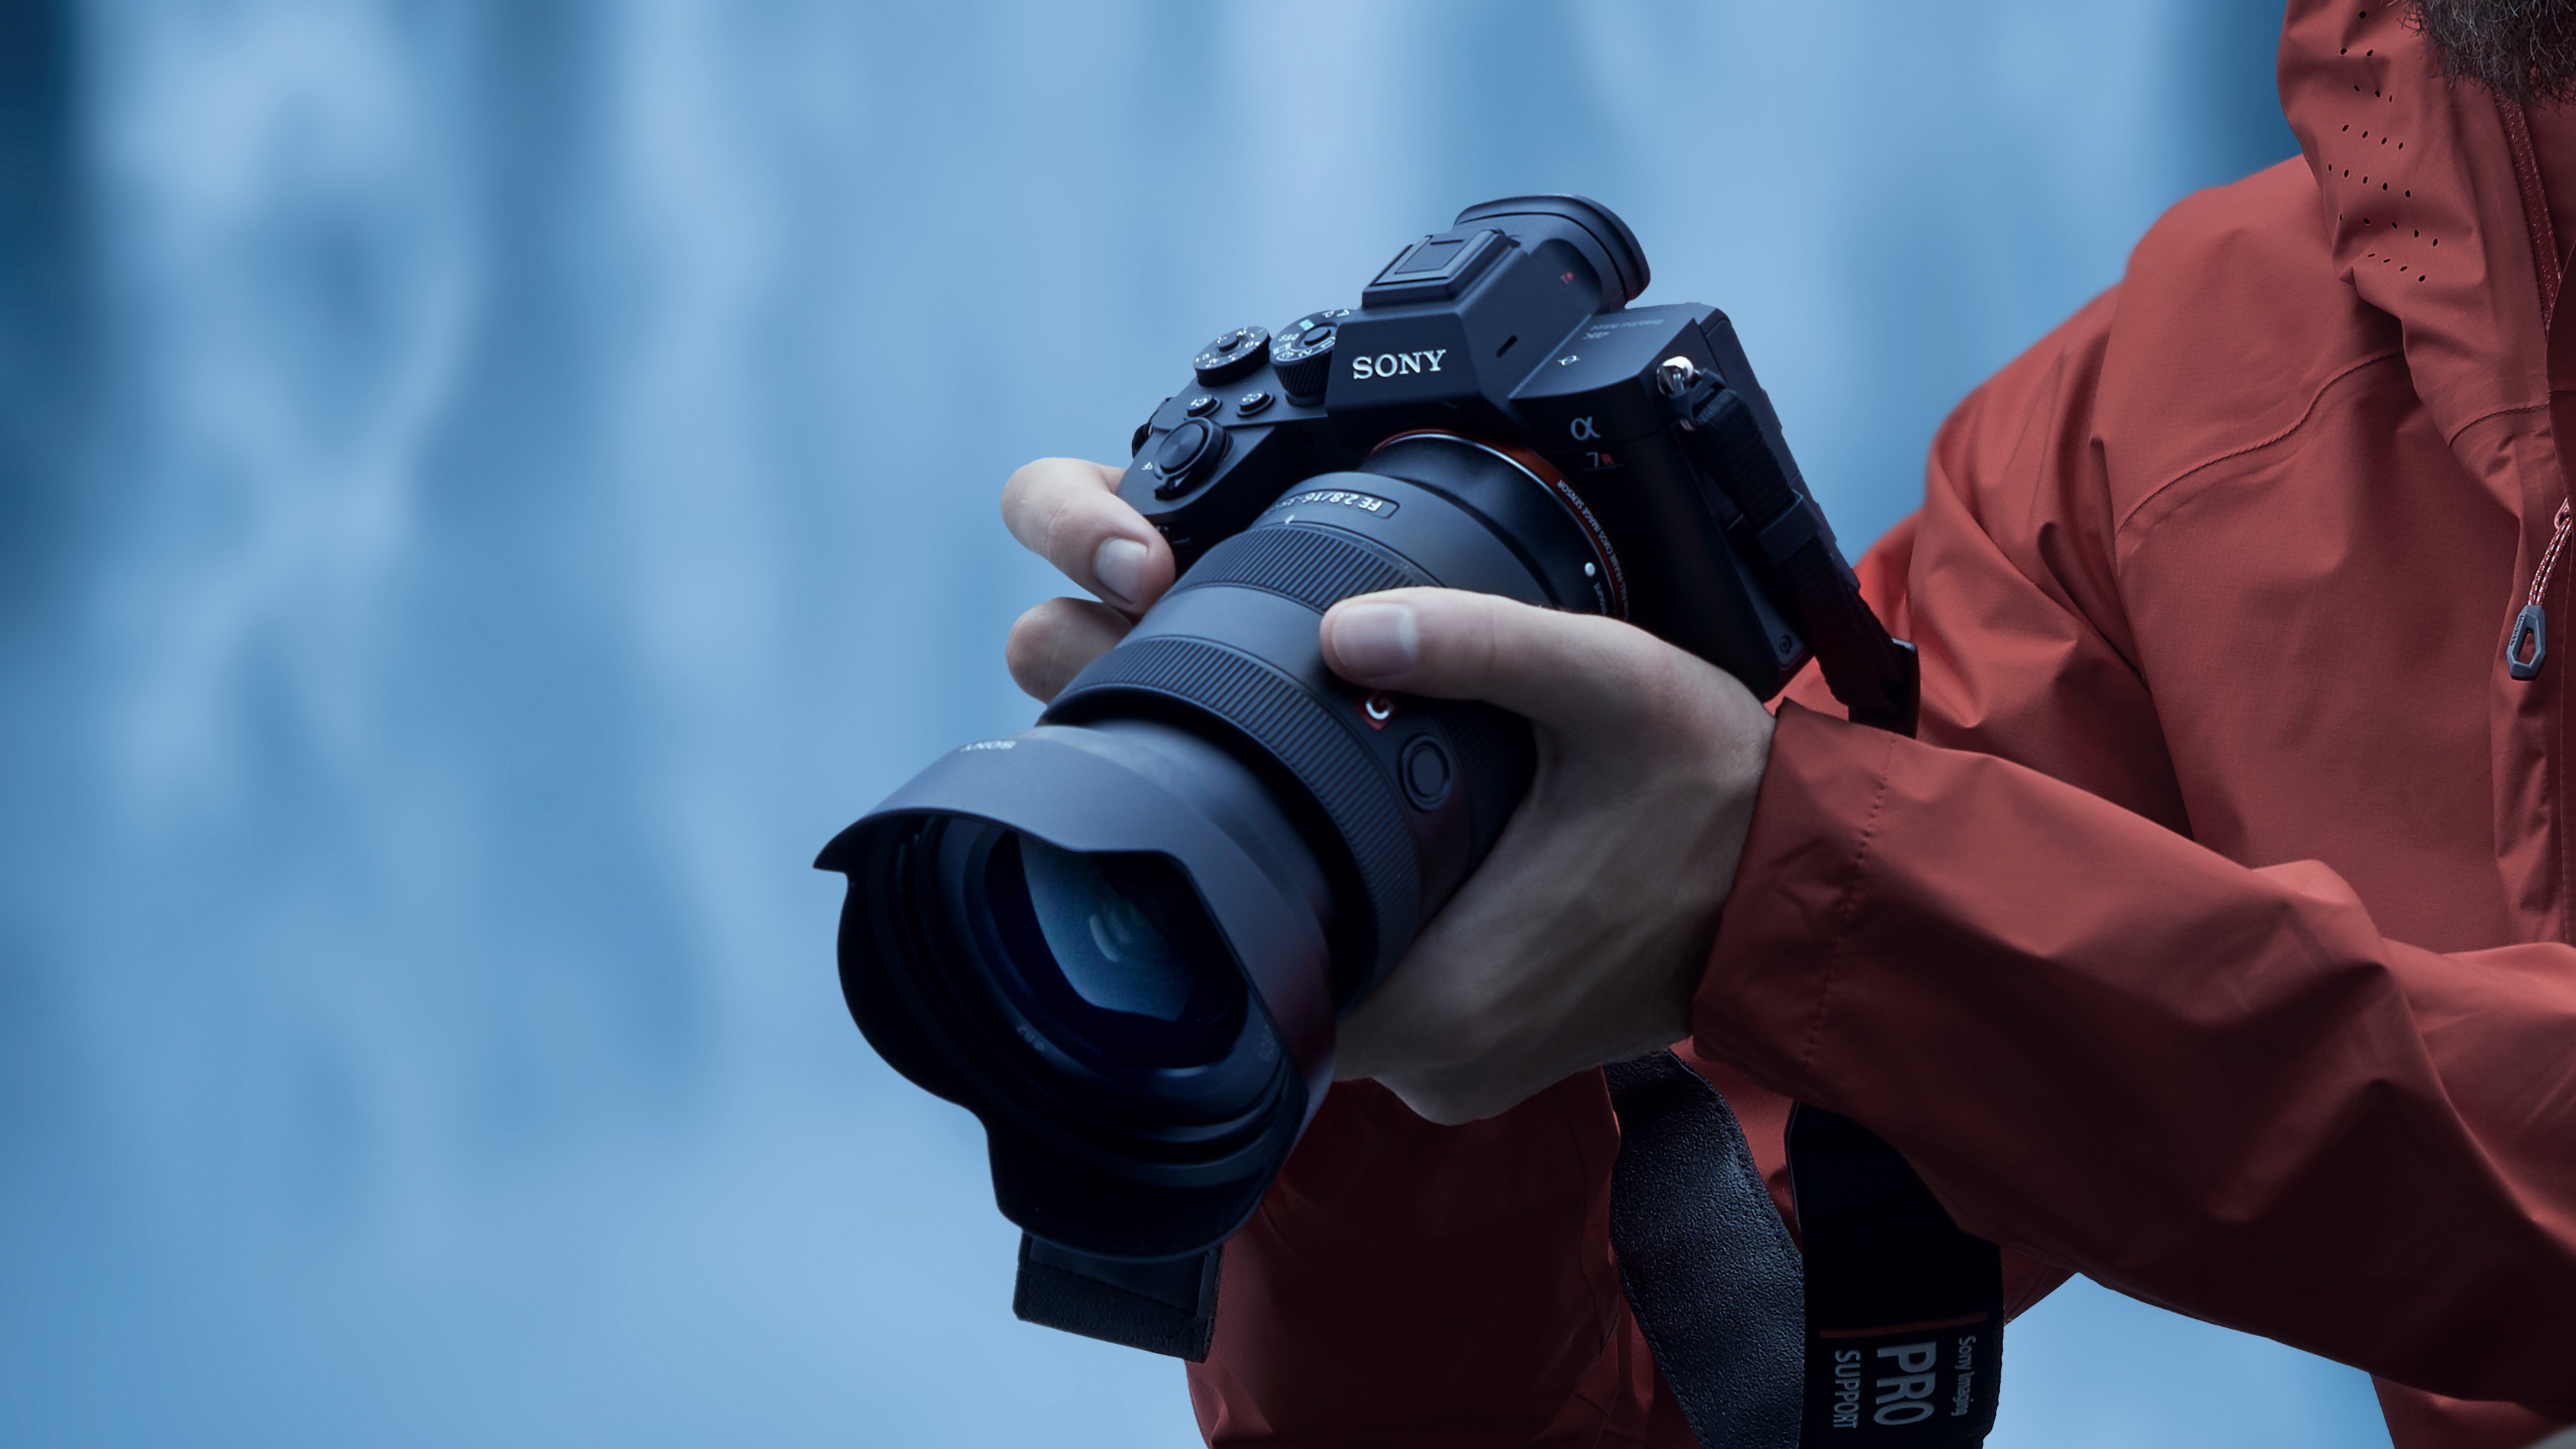 You Can Pre-Order The Sony a7R4 Now! - The World of Nardio